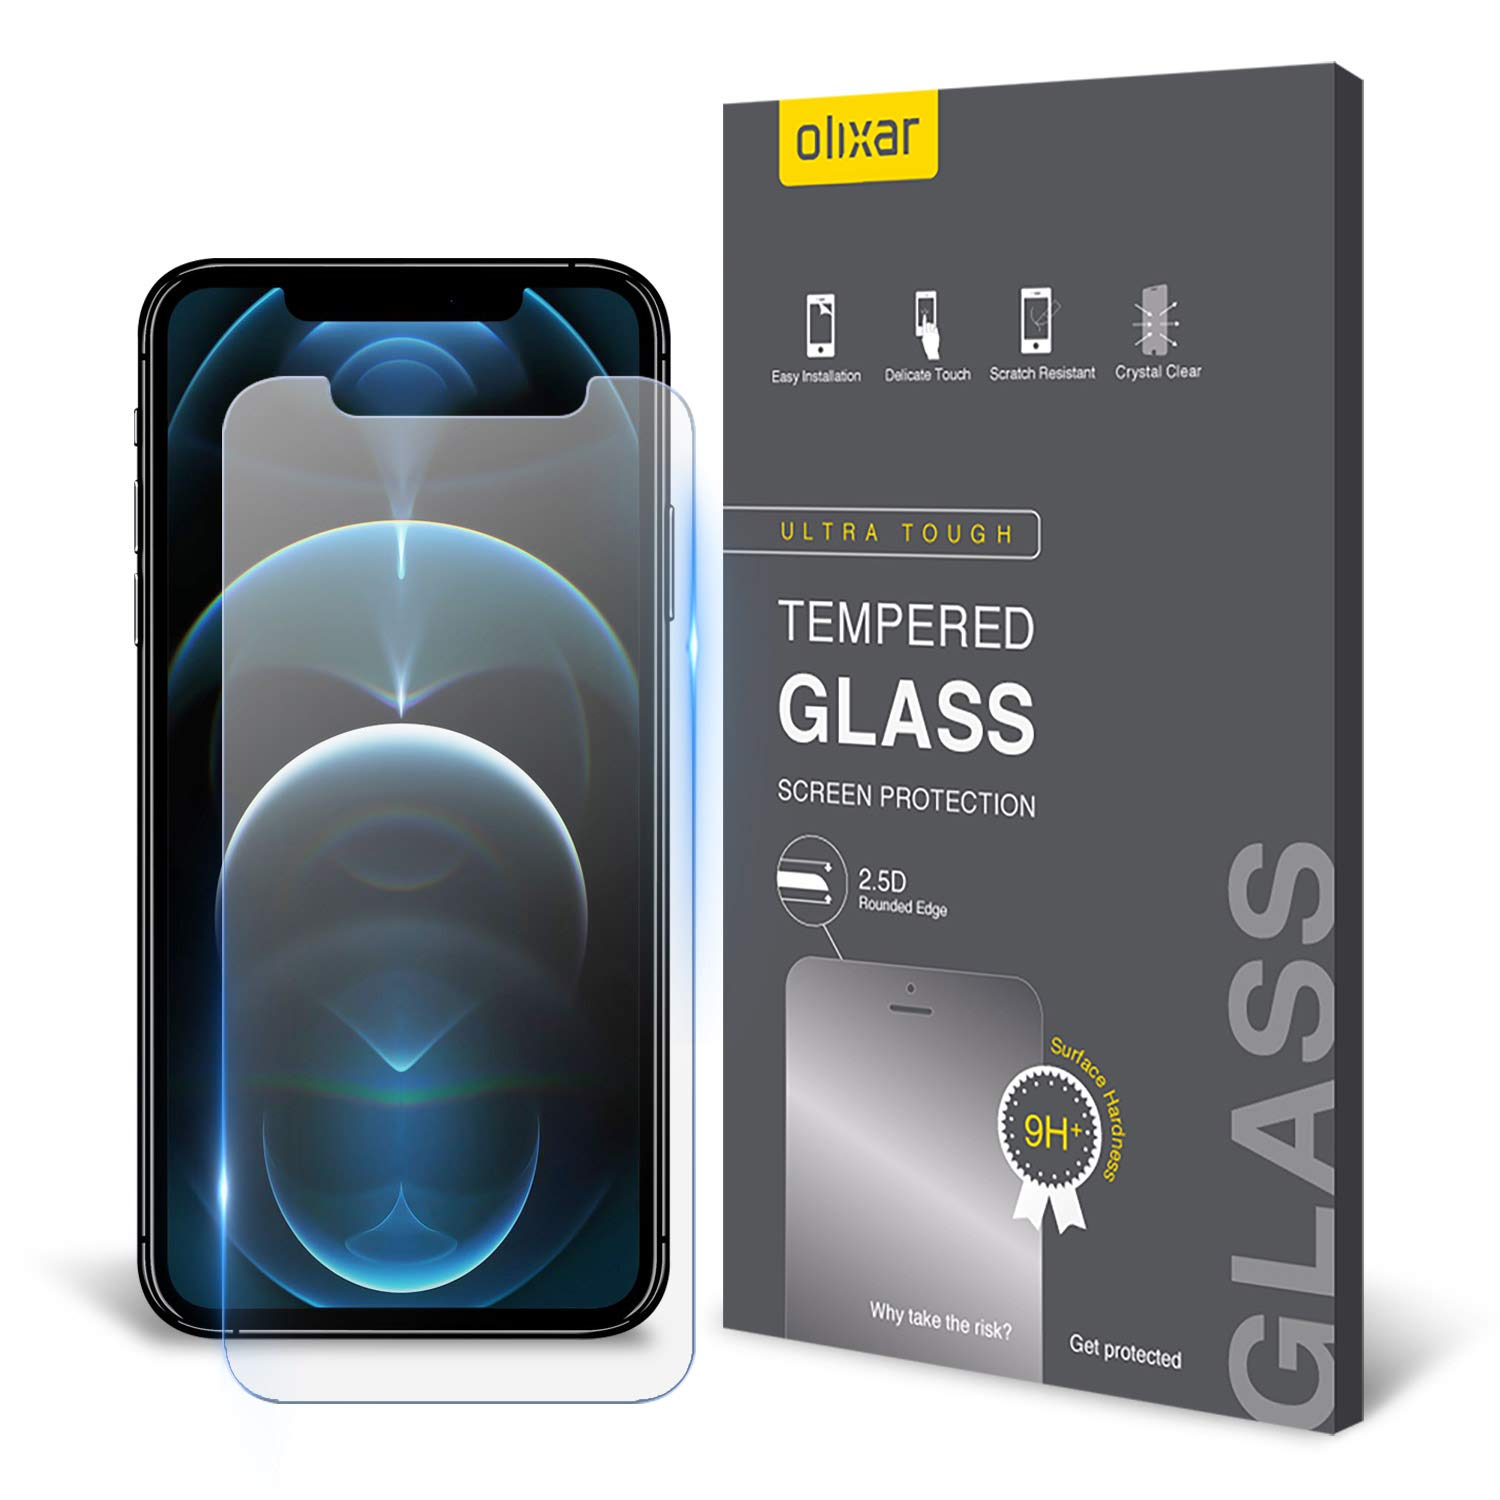 Olixar Screen Protector for iPhone 12 Pro Max, Tempered Glass - Reliable Protection, Supports Device Features - Full Video Installation Guide